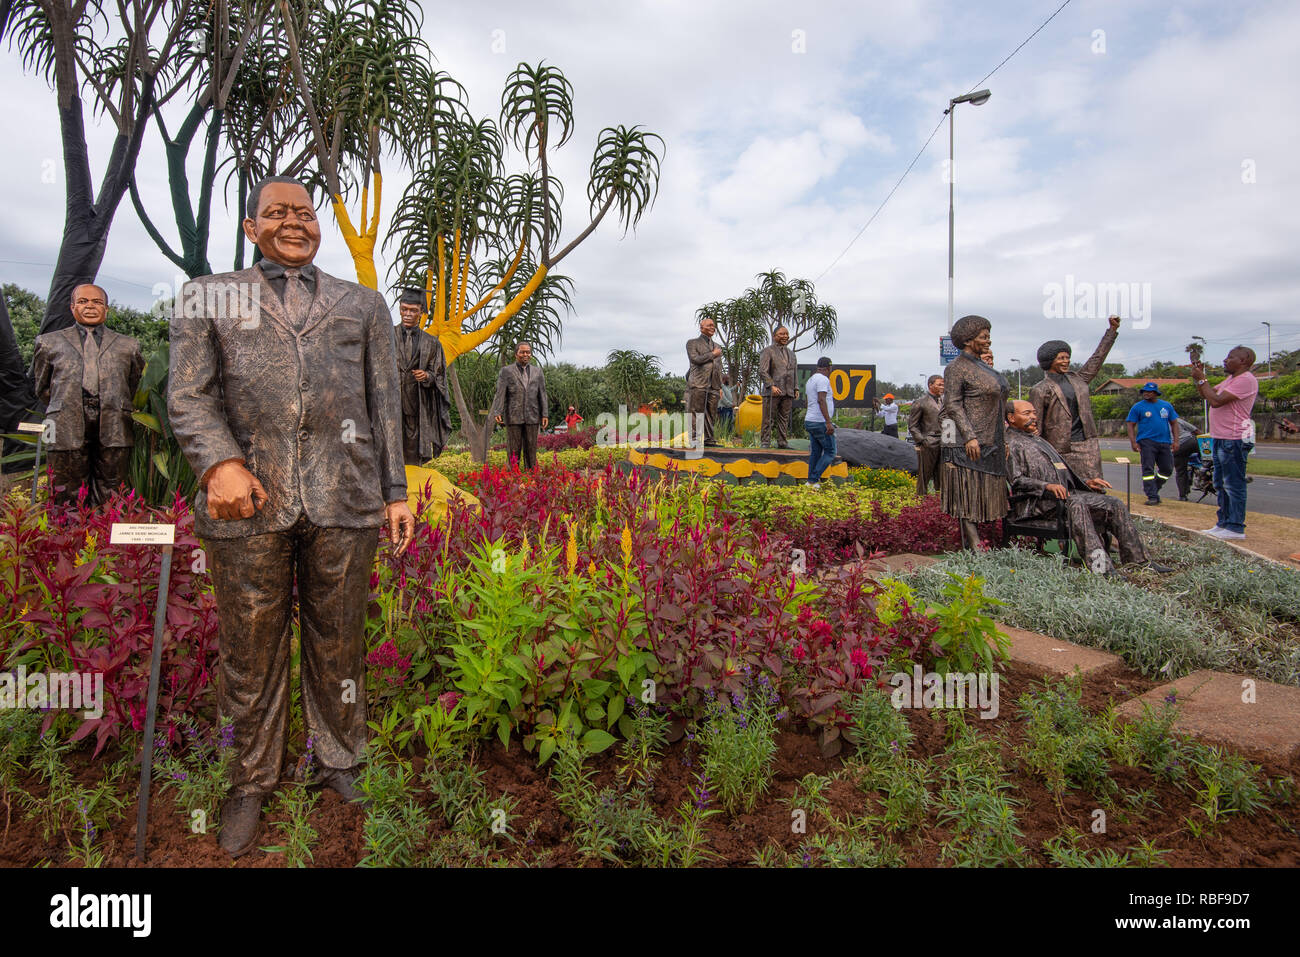 Durban, South Africa, 9th January 2019. Staues of African National Congress (ANC) stalwarts and former party presidents on display along the Ruth First Highway outside Durban ahead of the African National Congress (ANC) 2019 Election Manifesto Launch set to take place at Moses Mabhida Stadium in Durban on Saturday, 12th January, 2019. Pictured are members of the public enjoyng the artistic and historical display. Jonathan Oberholster/Alamy Live News - Stock Image